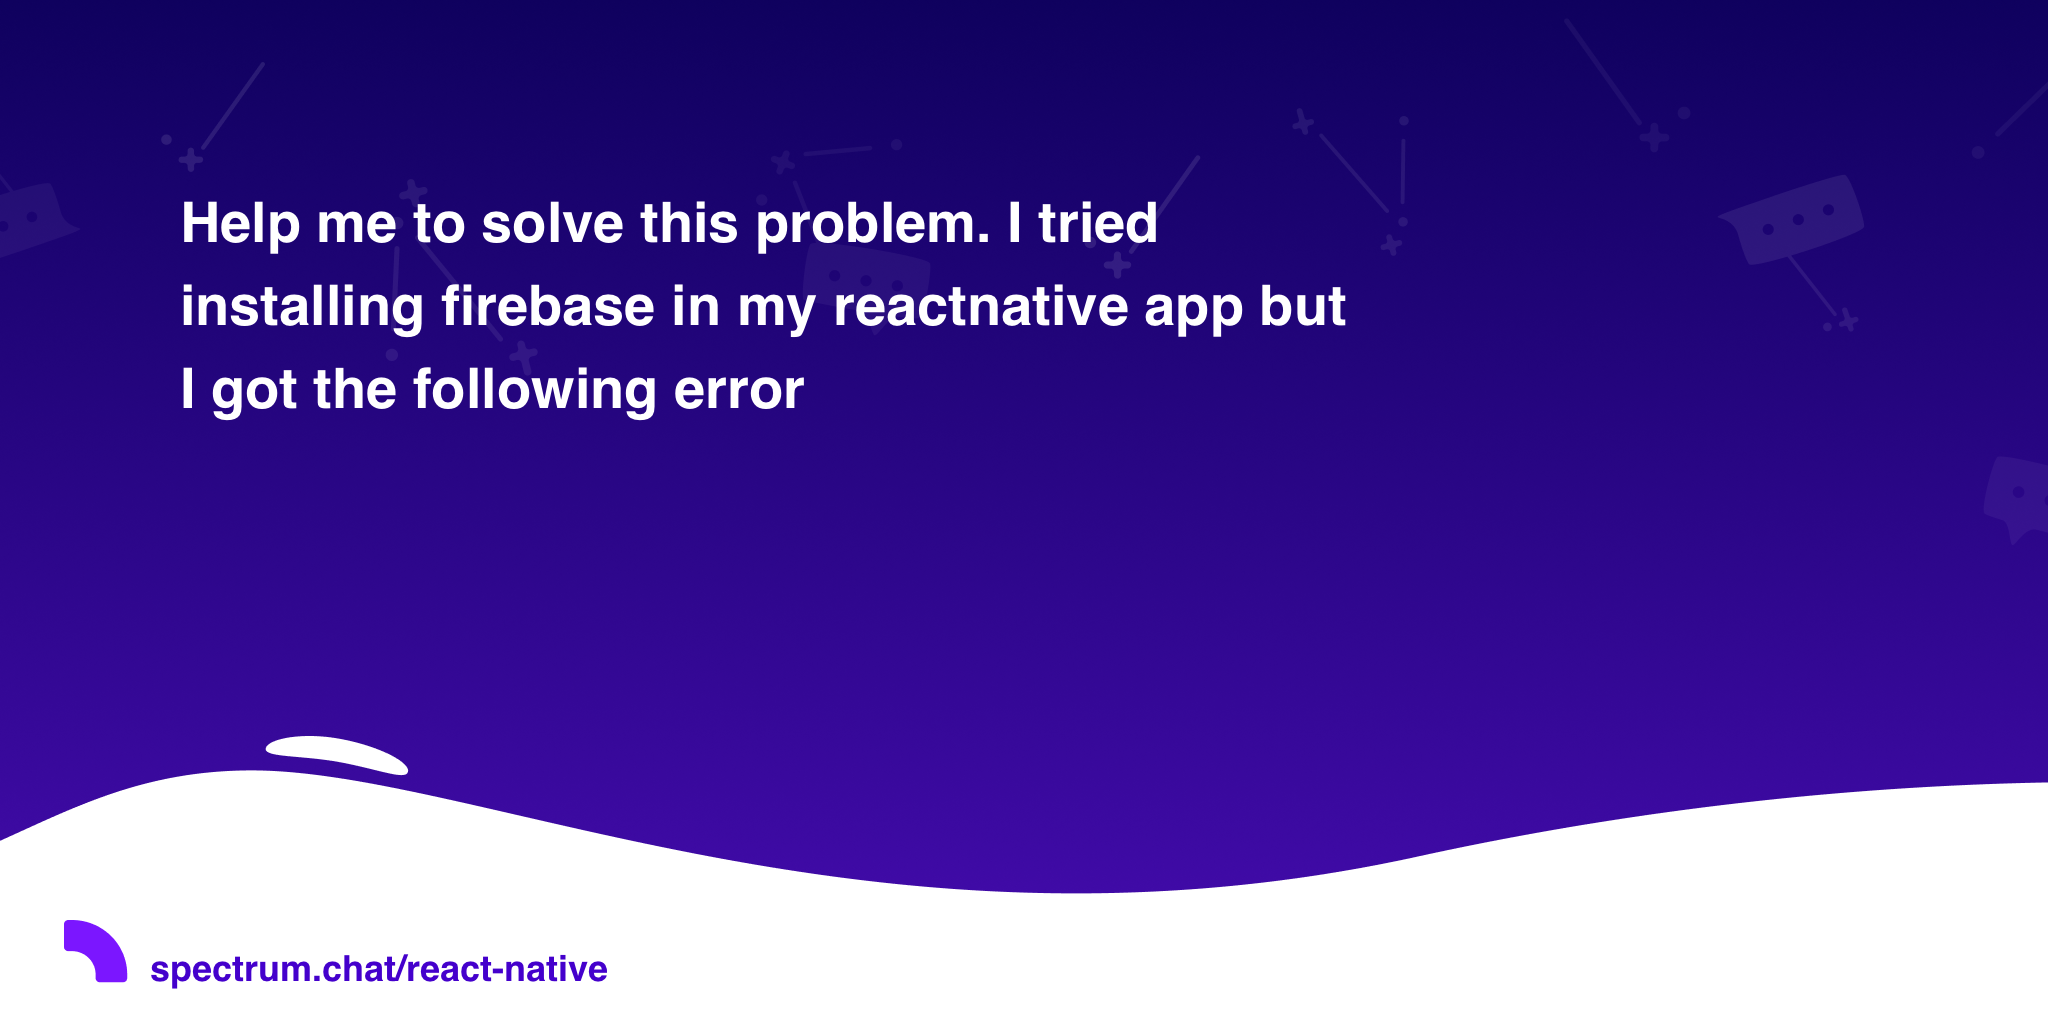 Help me to solve this problem  I tried installing firebase in my